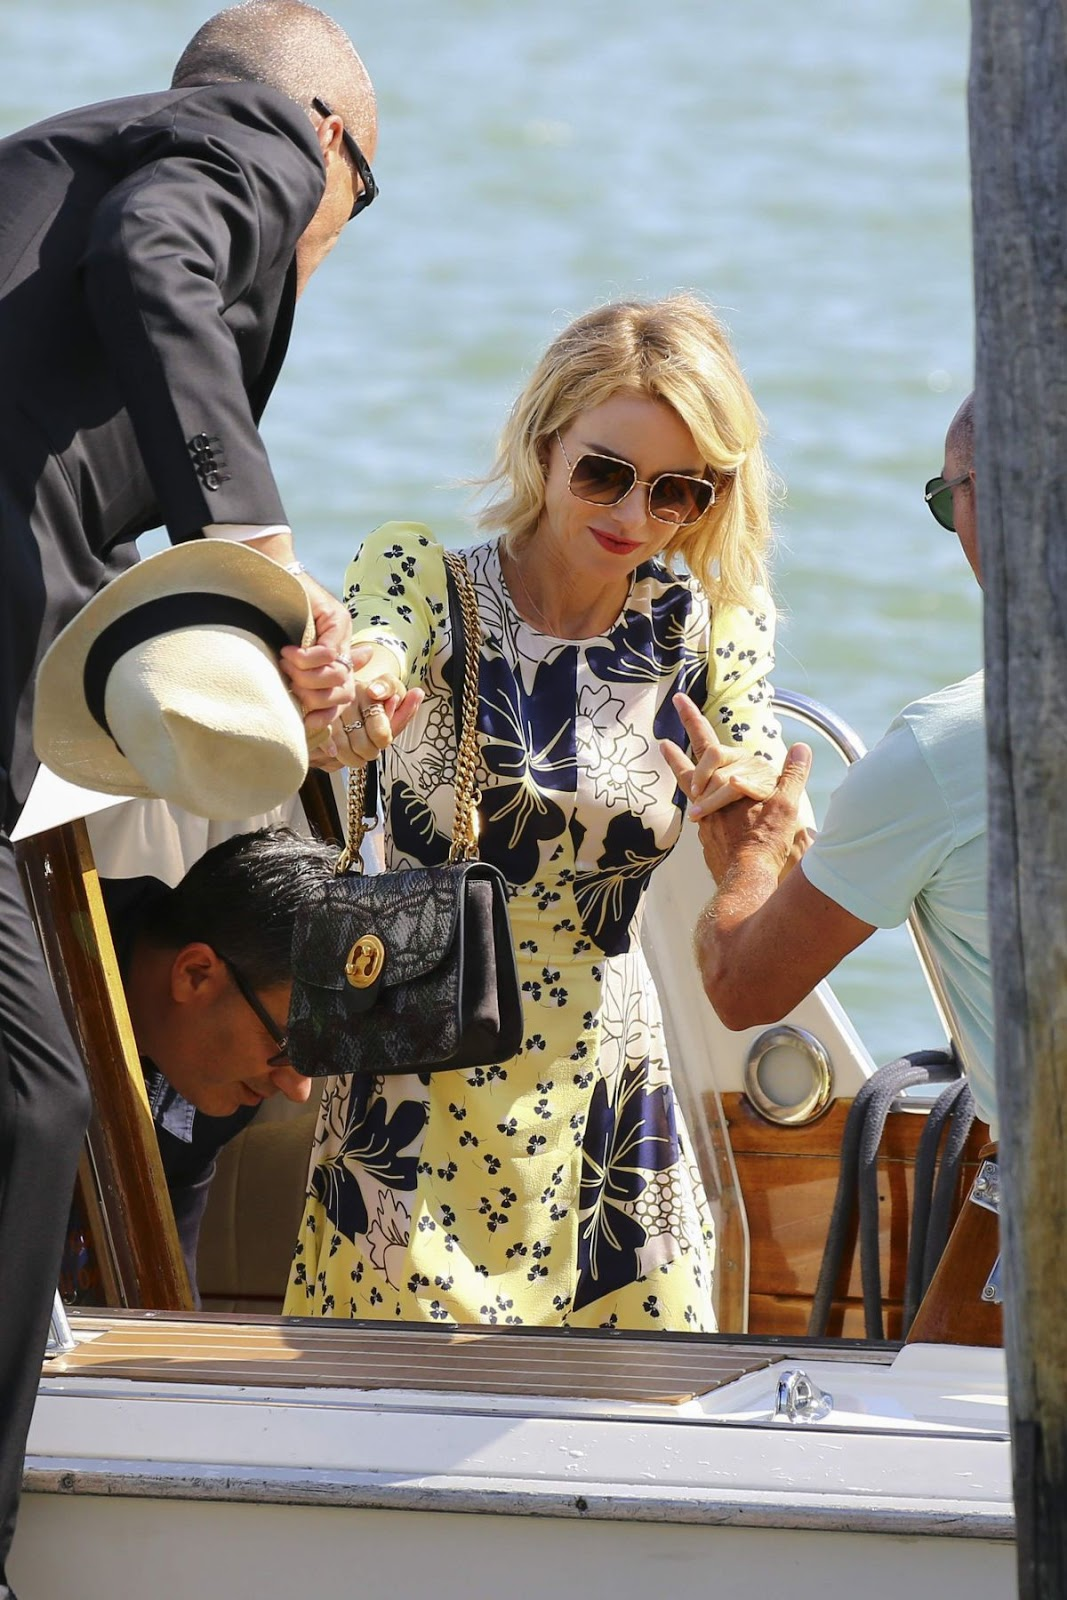 Full HD Photos of 'The Bleeder' actress Naomi Watts Arrives at A Private Dock Venice Film Festival in Venice